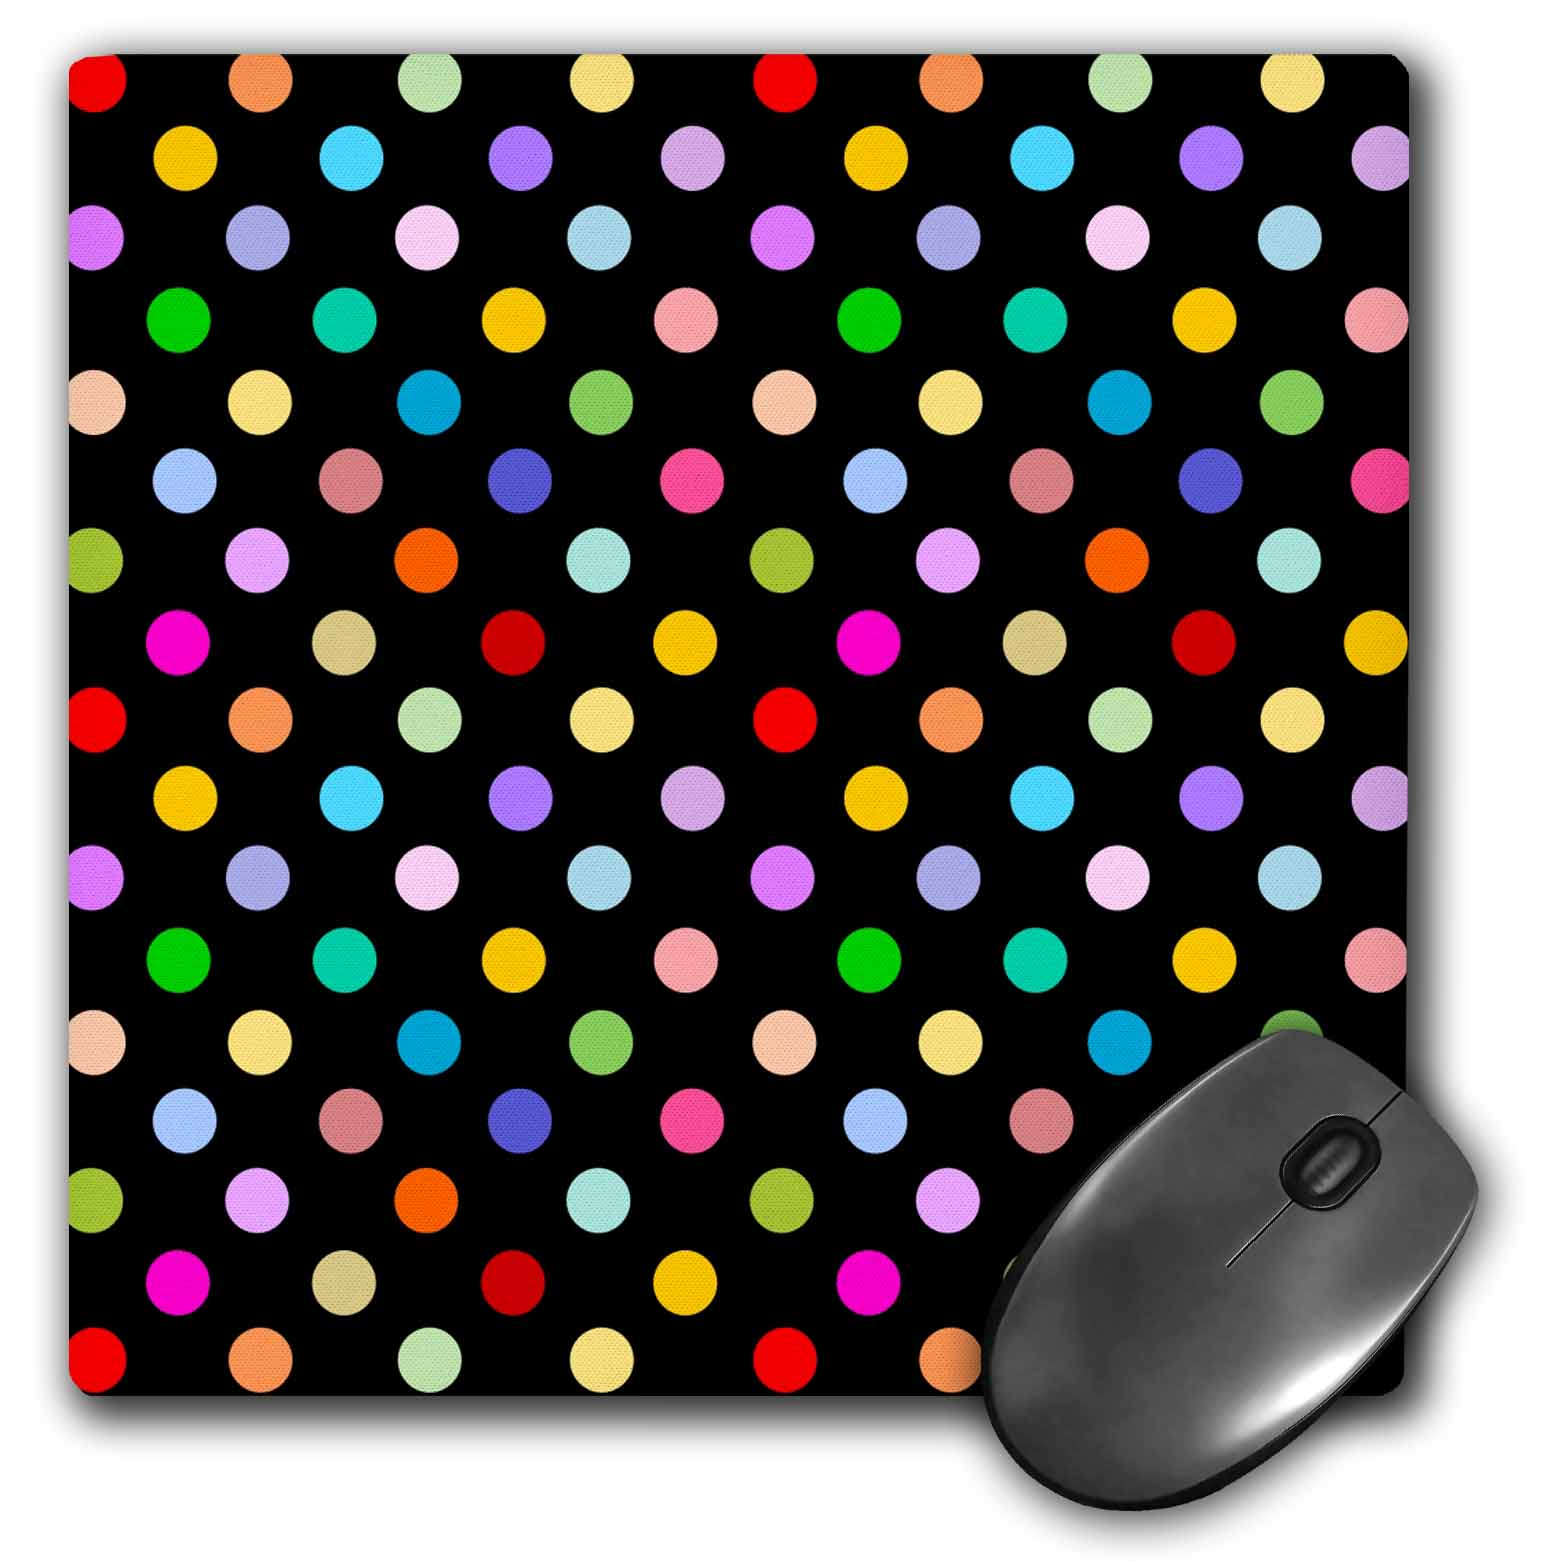 3dRose Colorful Polka dot pattern on black - Rainbow Multicolor Cute Dots and Spots Patterns, Mouse Pad, 8 by 8 inches